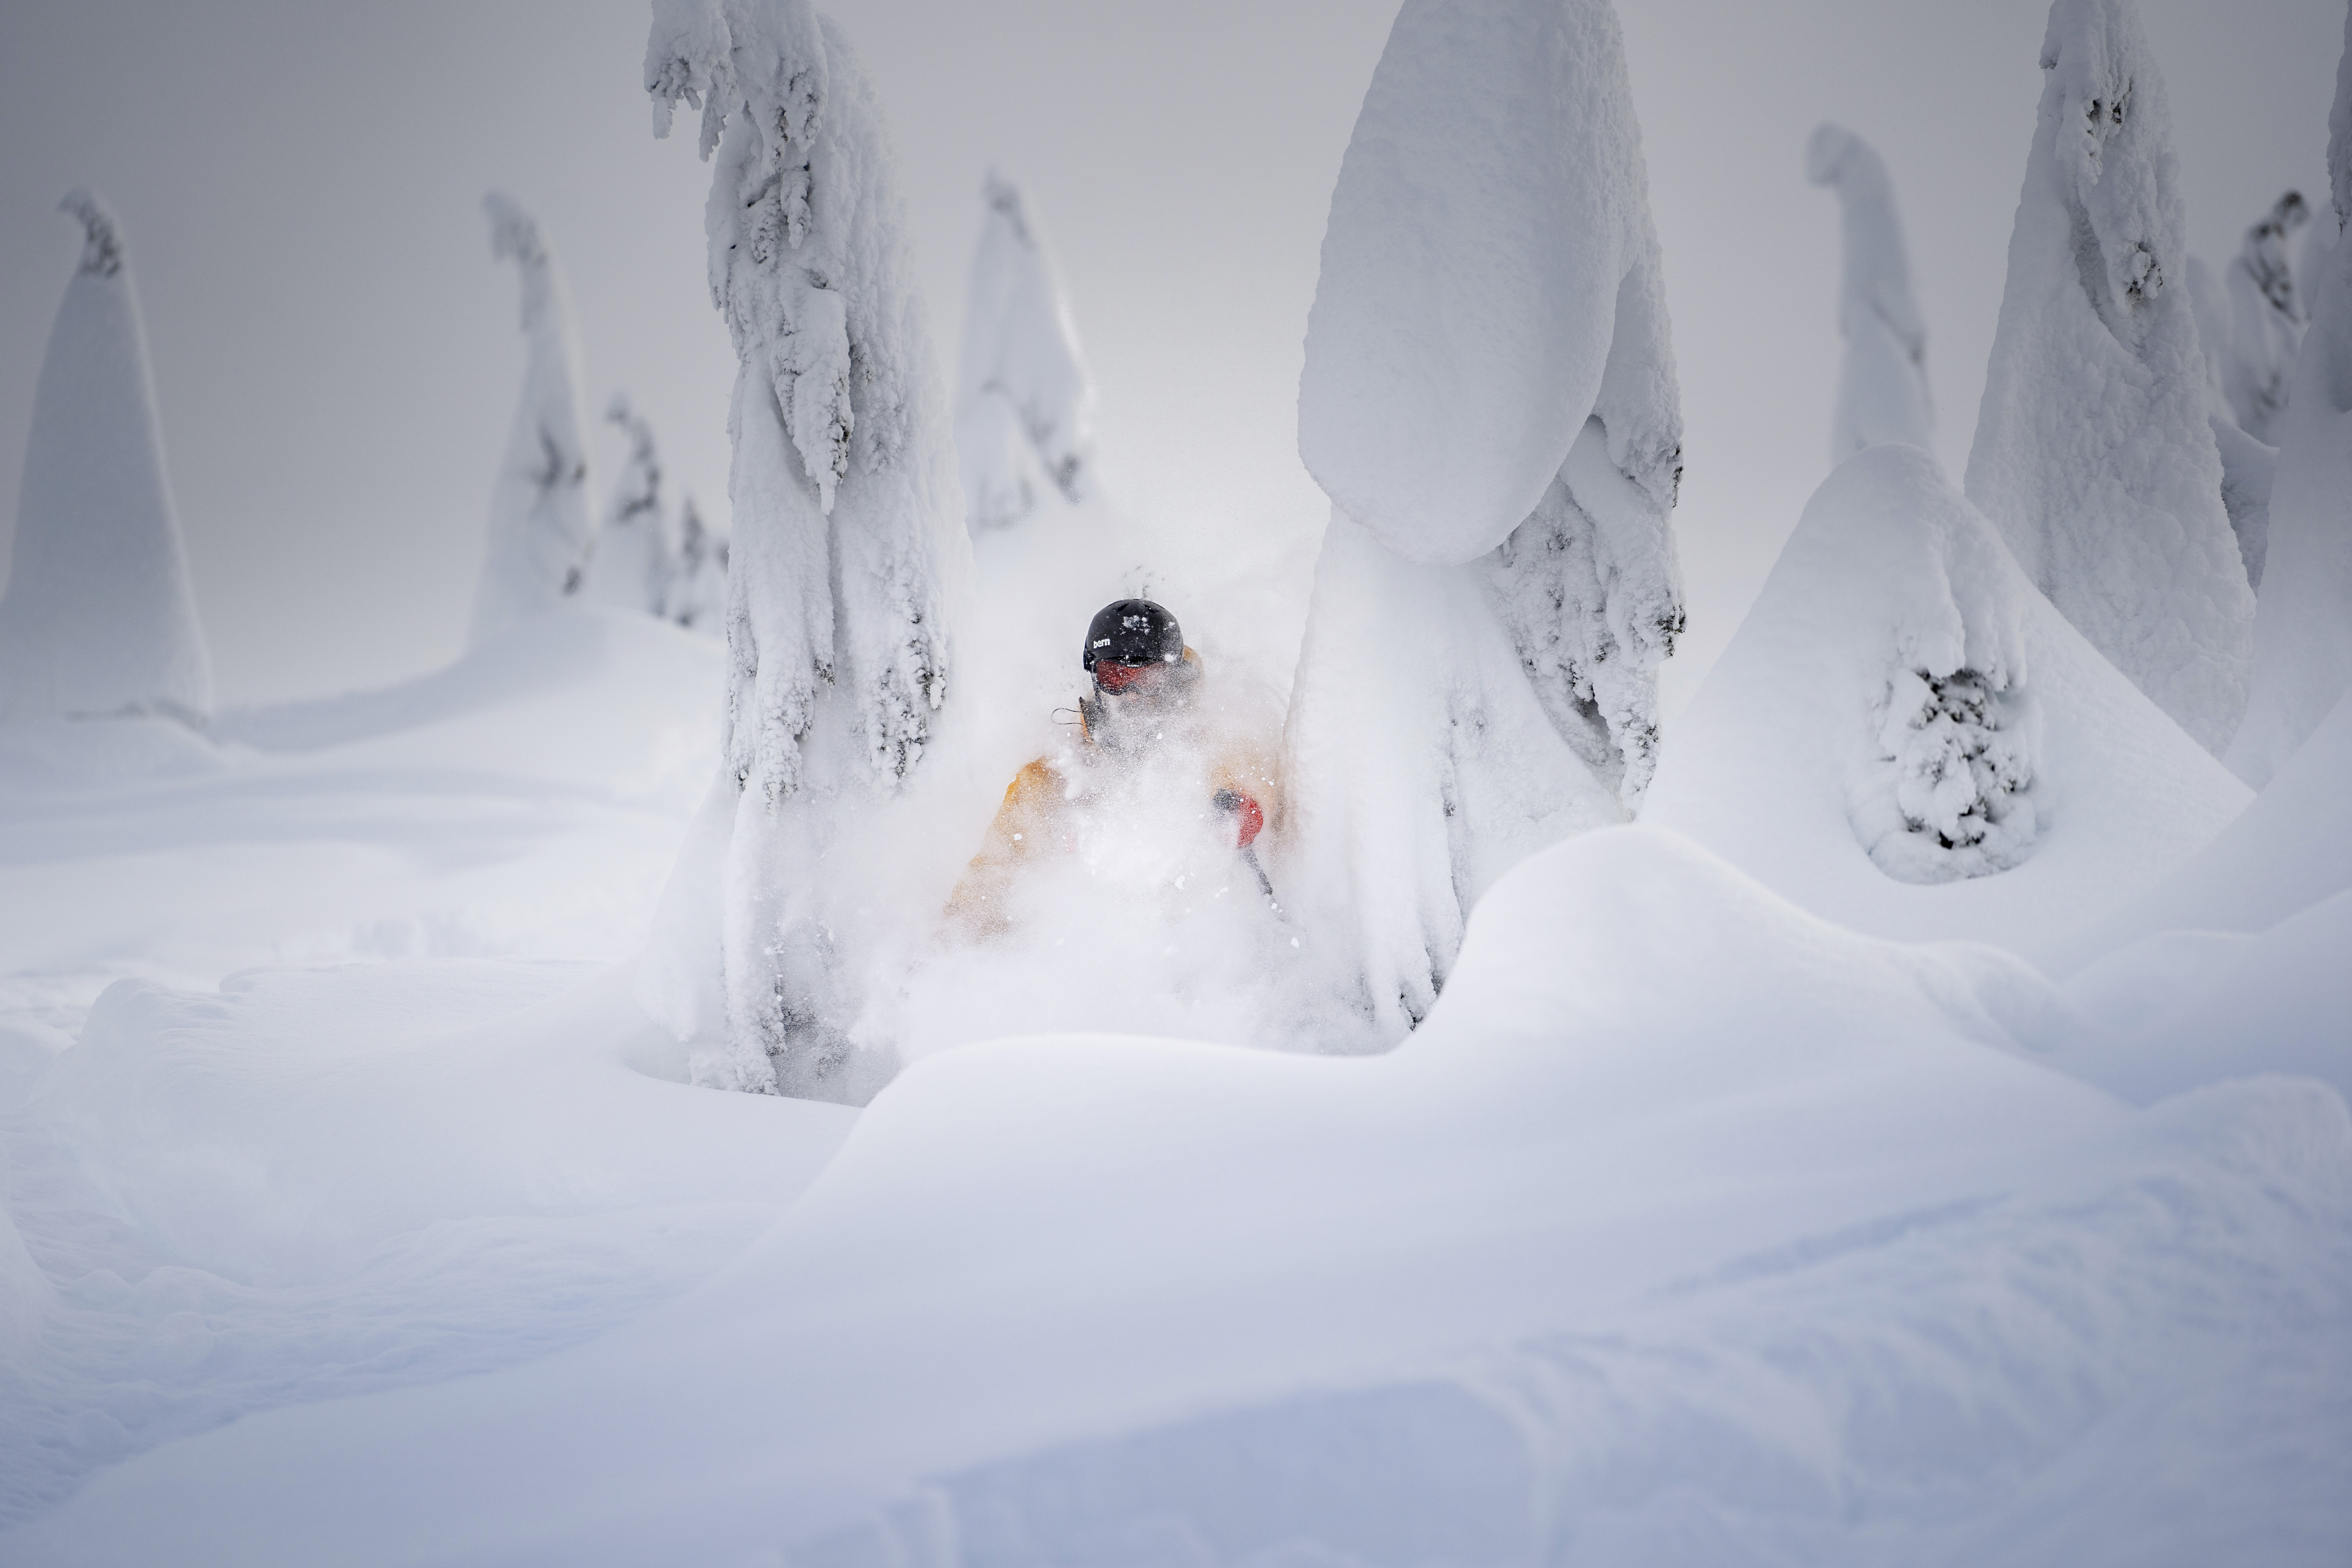 © Michael Fox, Canada, entry, Open competition, Motion, 2021 Sony World Photography Awards